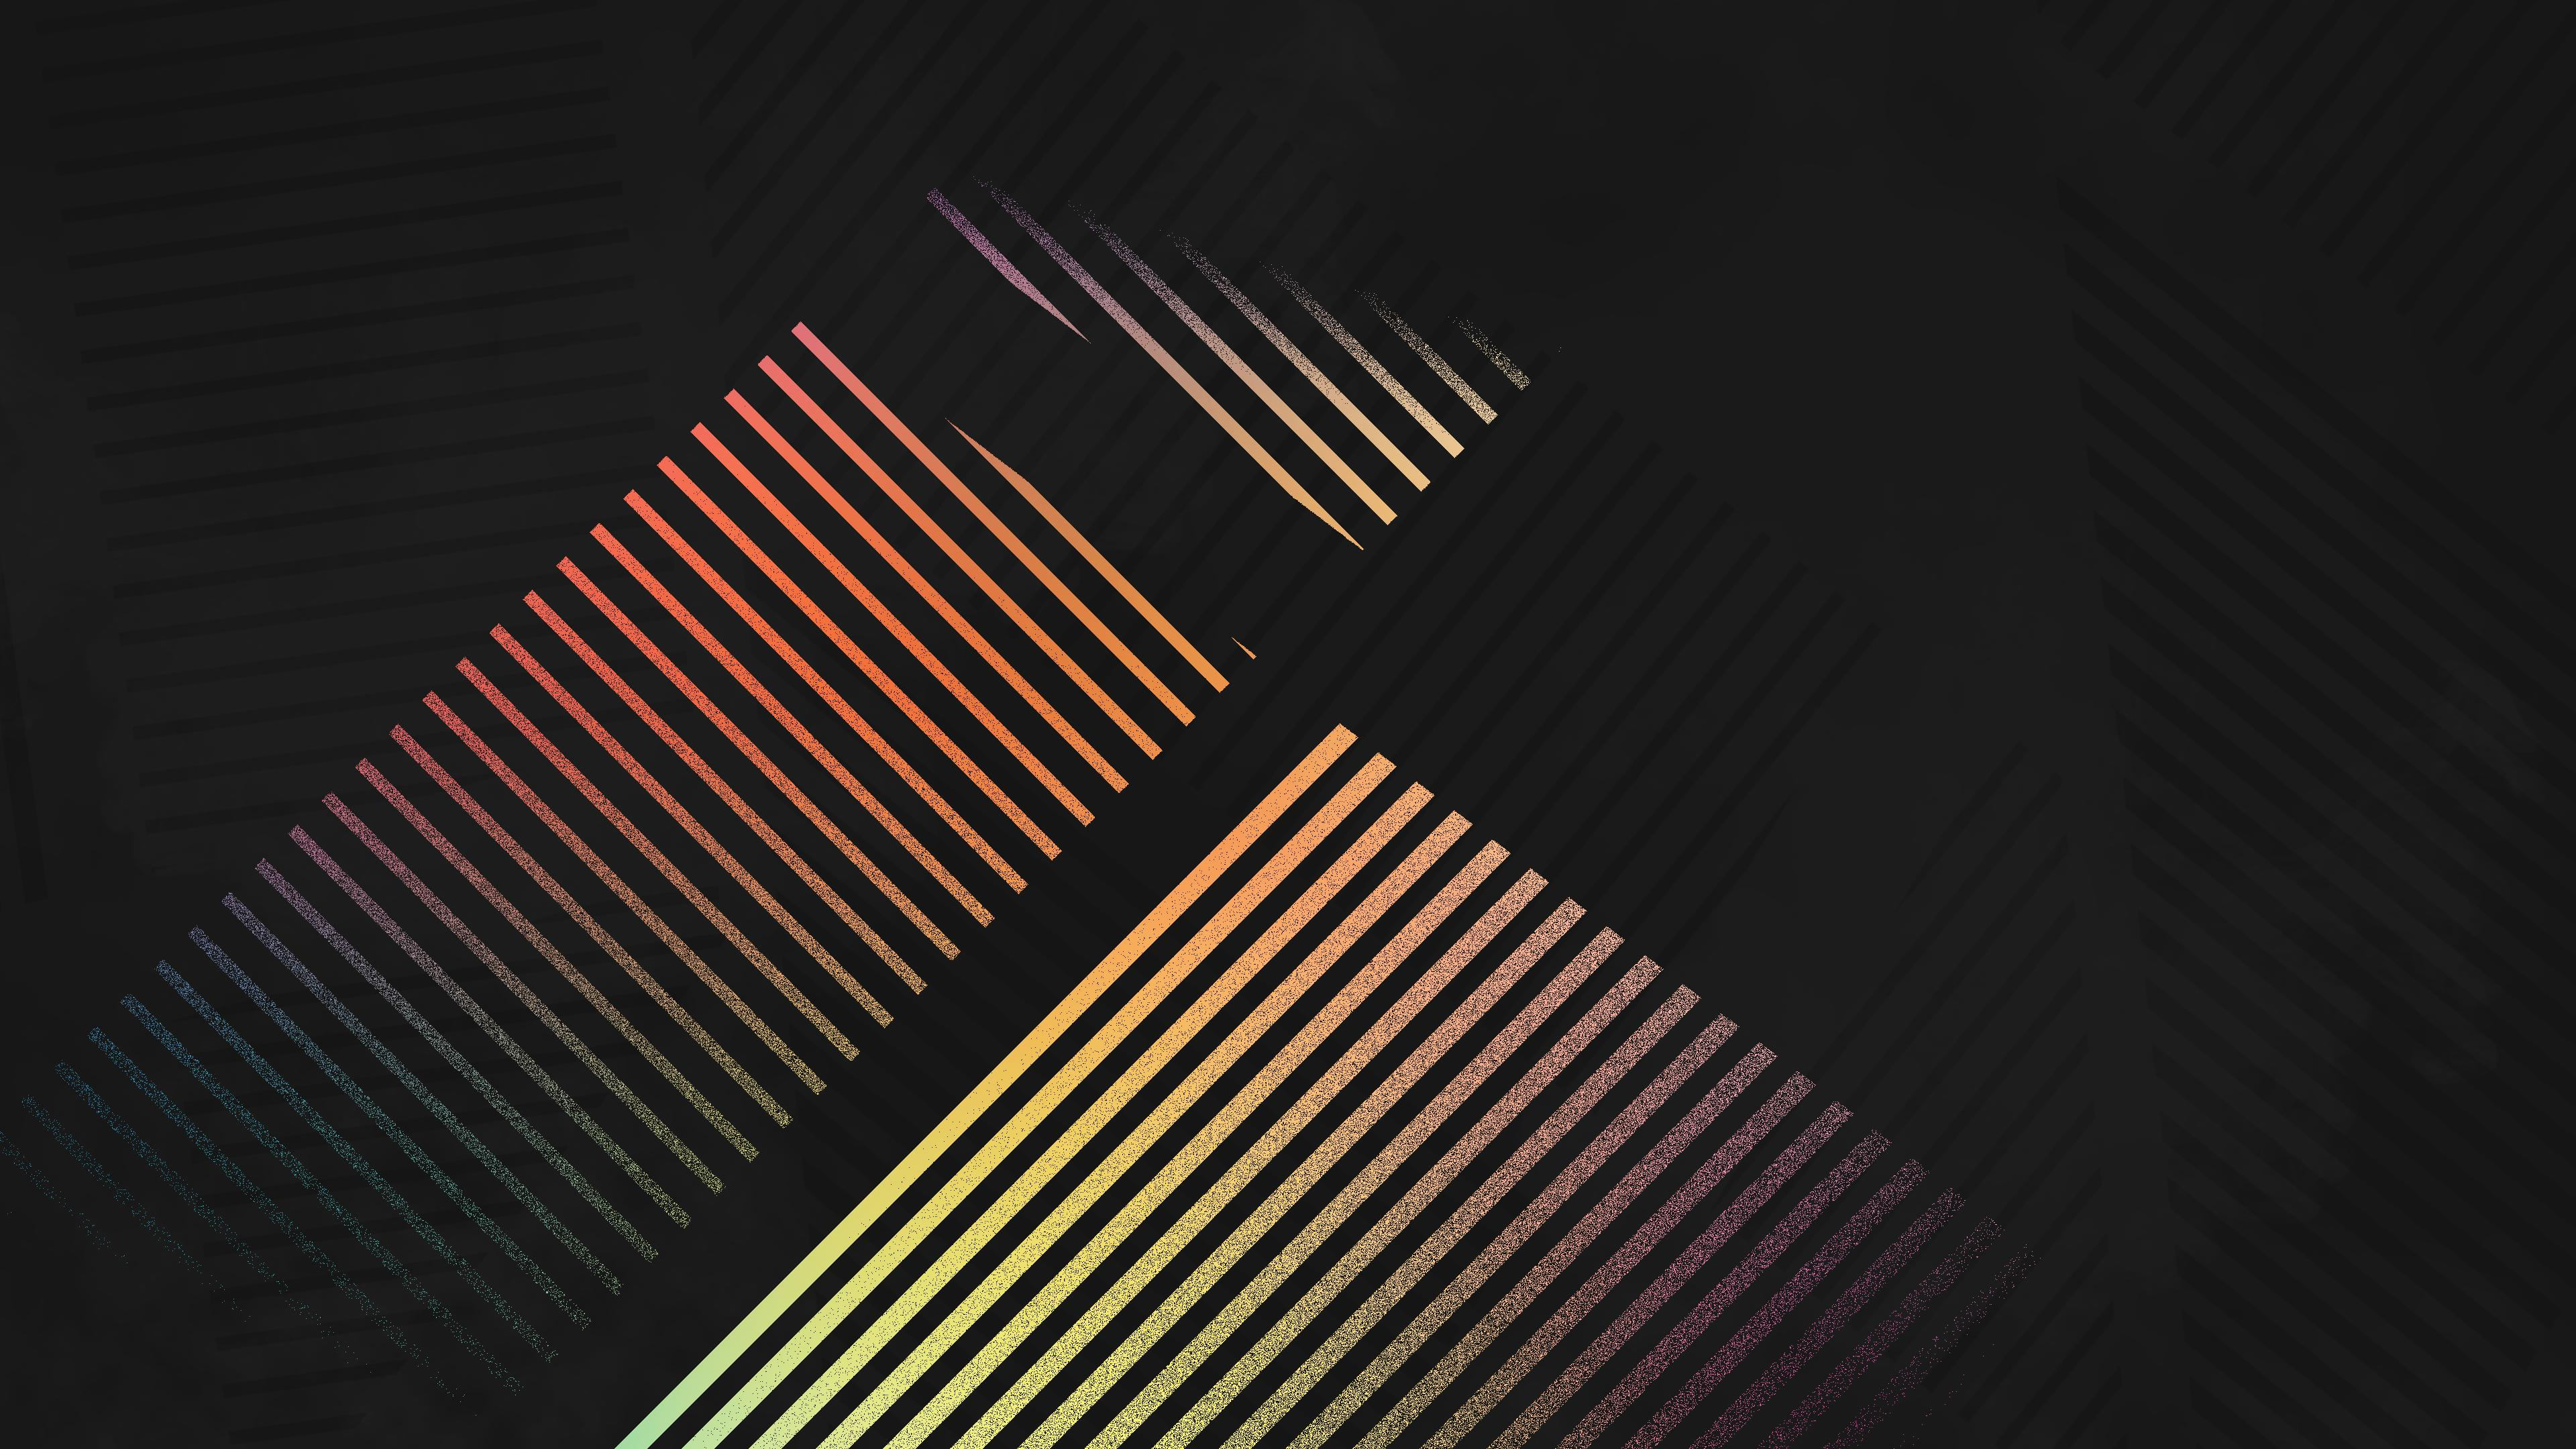 Abstract Lines Shapes 4k Hd Abstract 4k Wallpapers Images